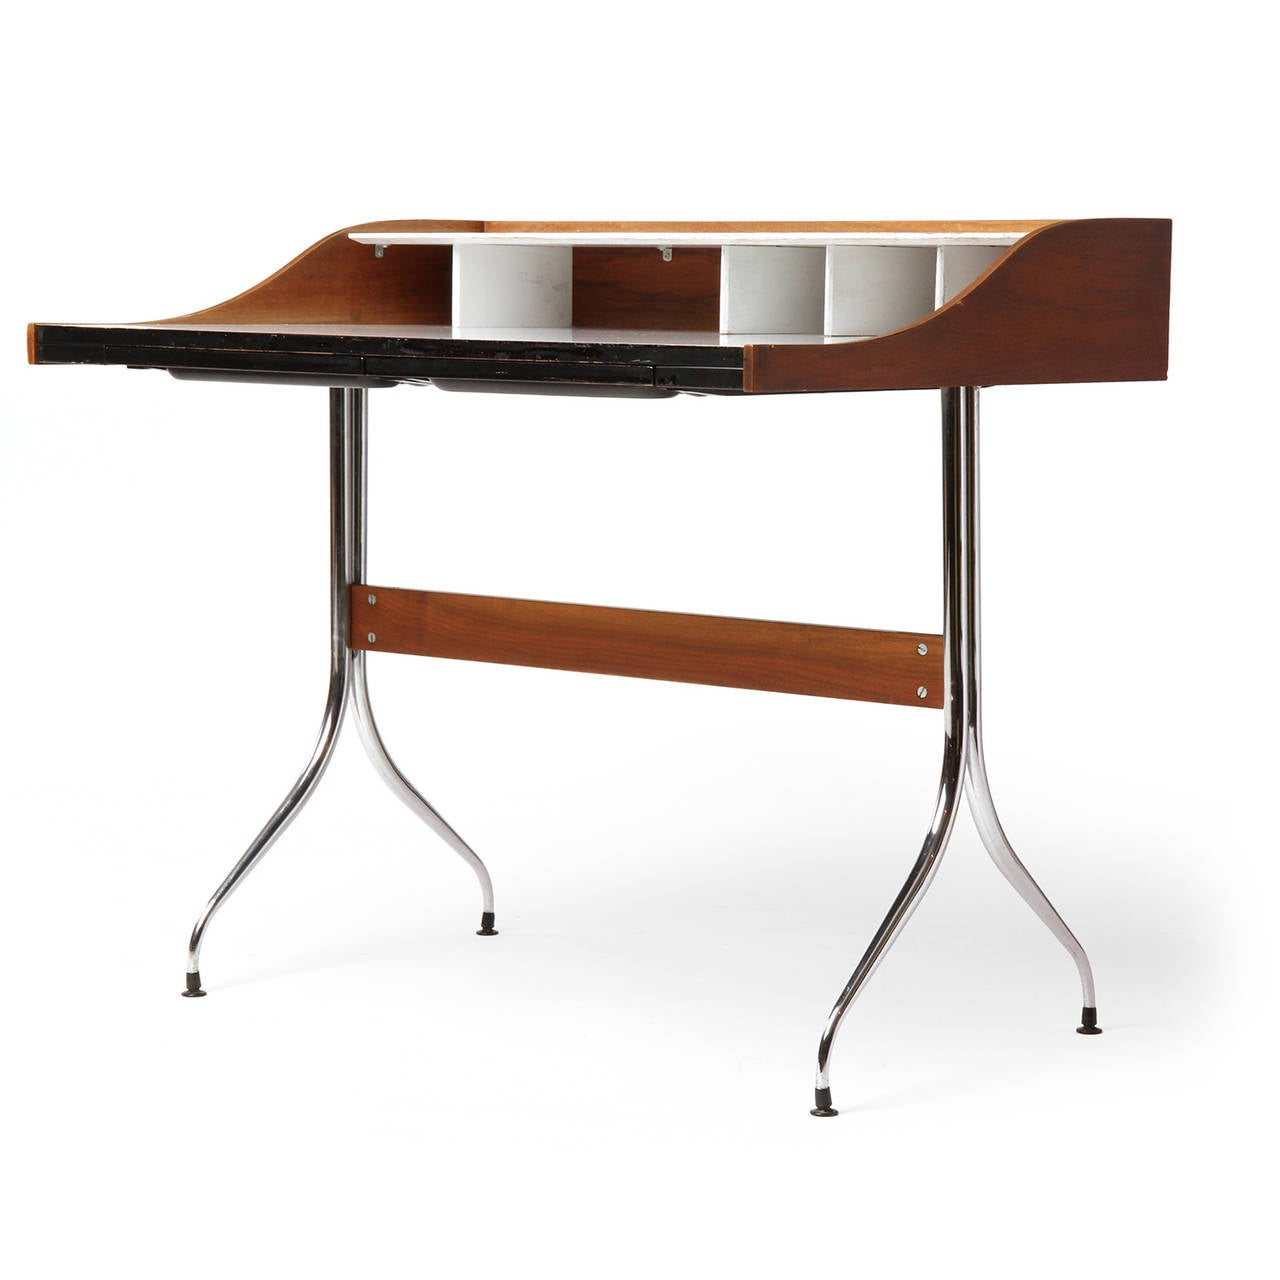 swag leg desk by george nelson for sale at stdibs - swag leg desk by george nelson